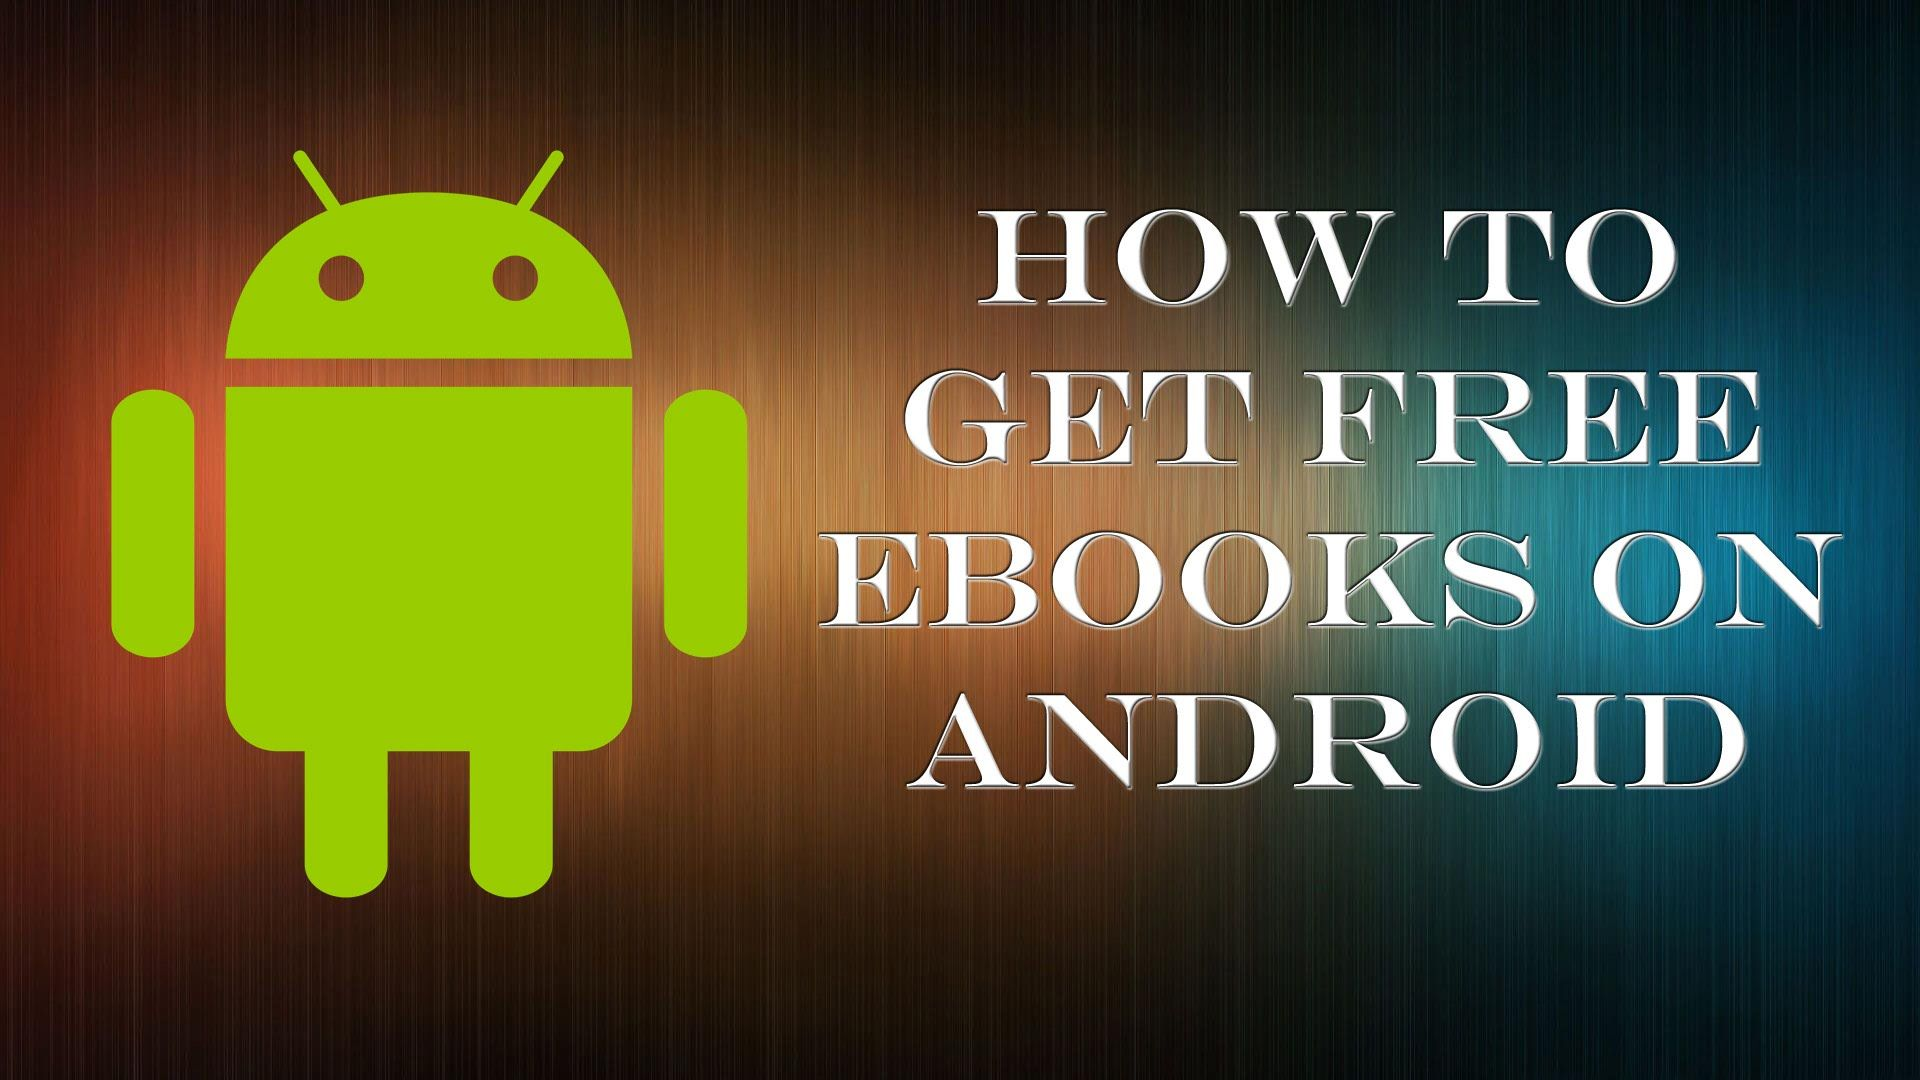 How to get free ebooks on android Free ebooks, Ebooks